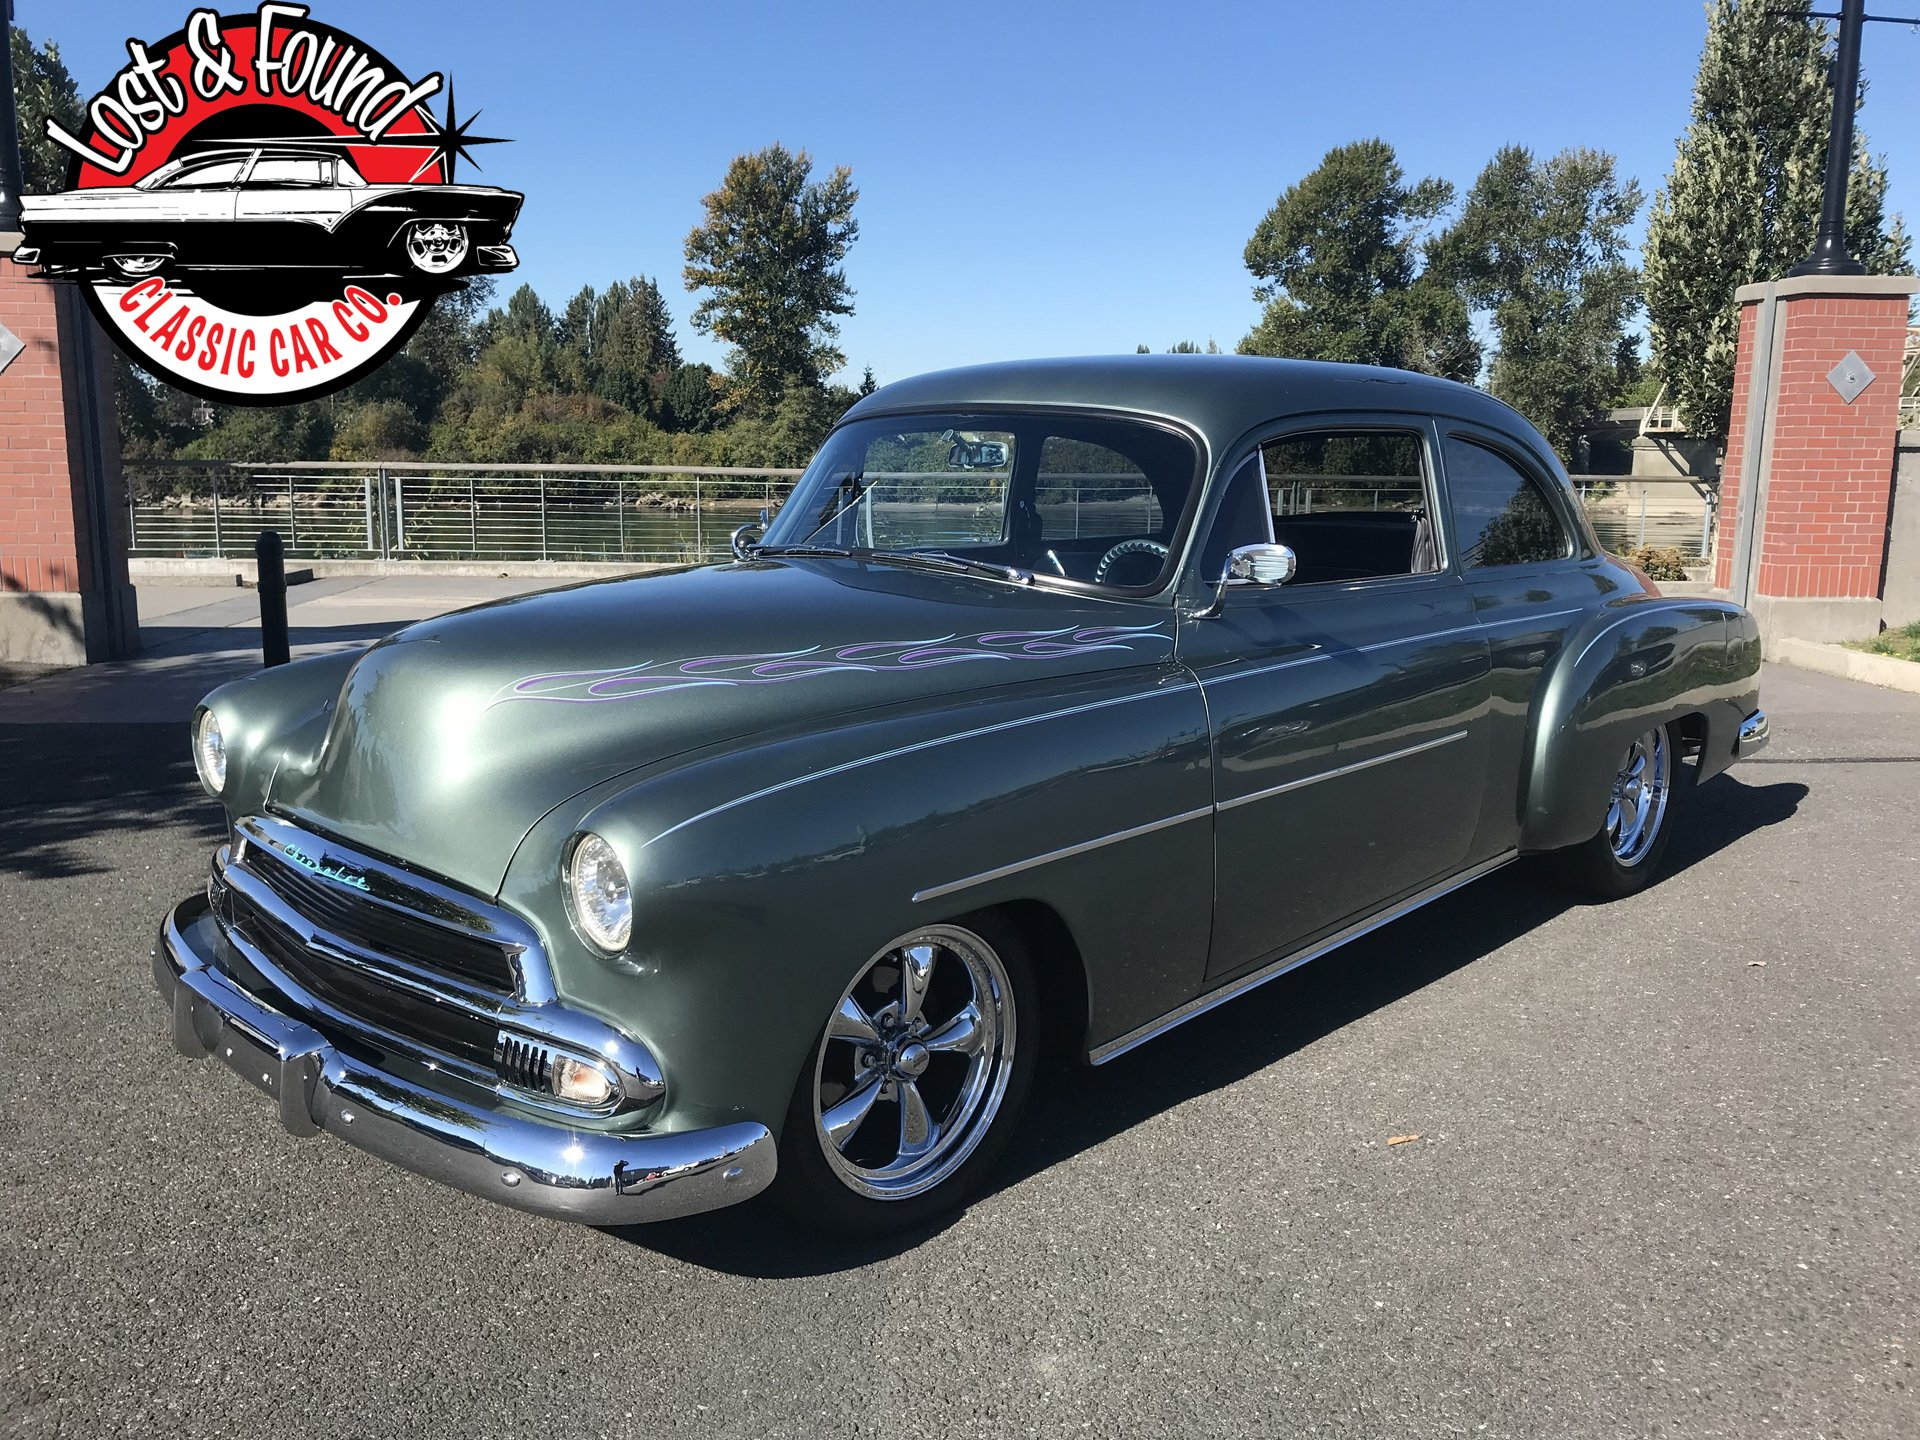 64103360faad hd 1951 chevrolet coupe street rod